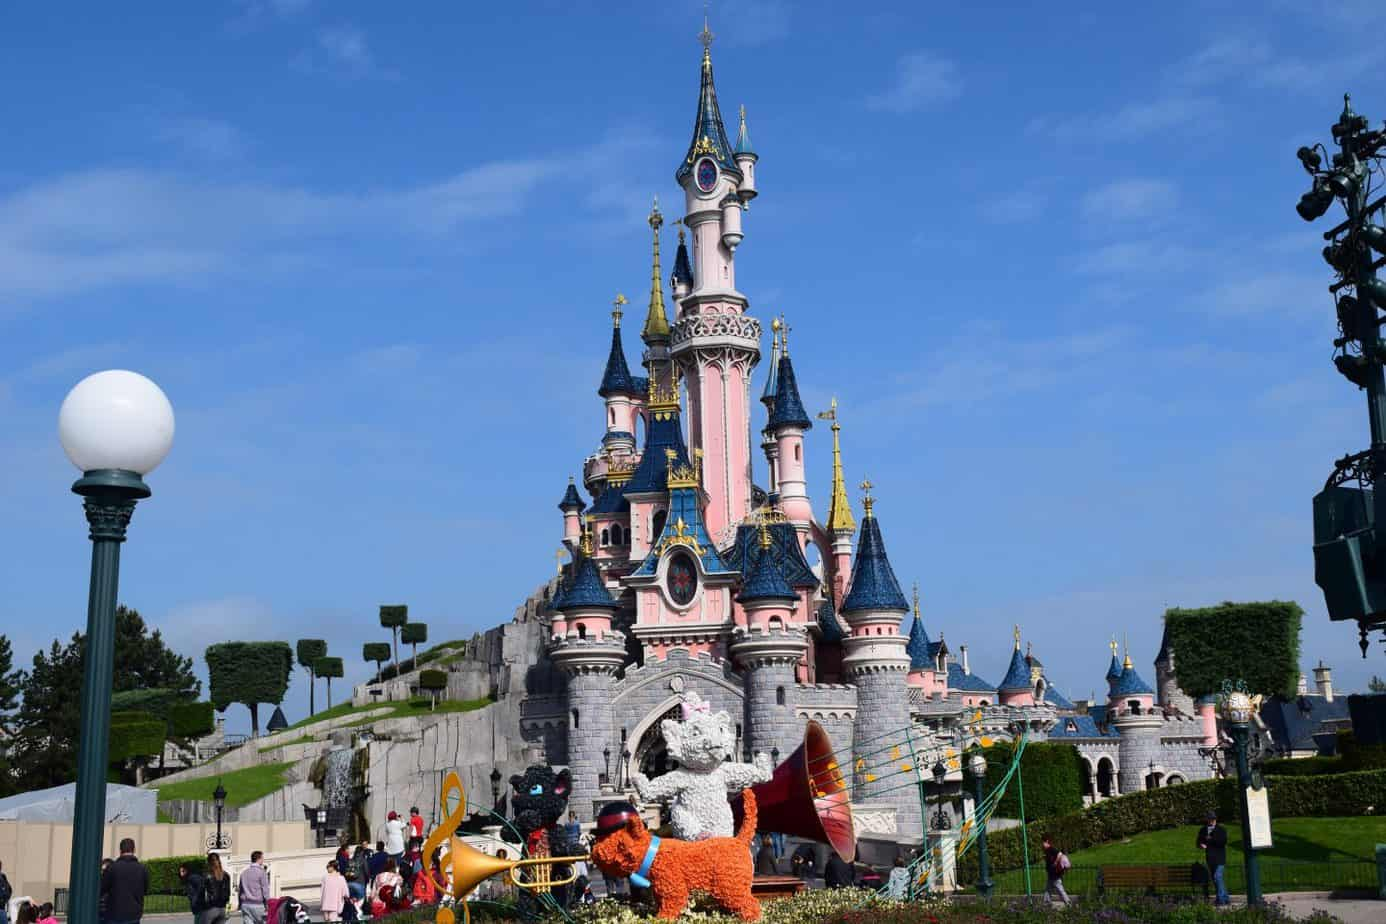 Disneyland Paris castle makes my top places to visit in Europe with children